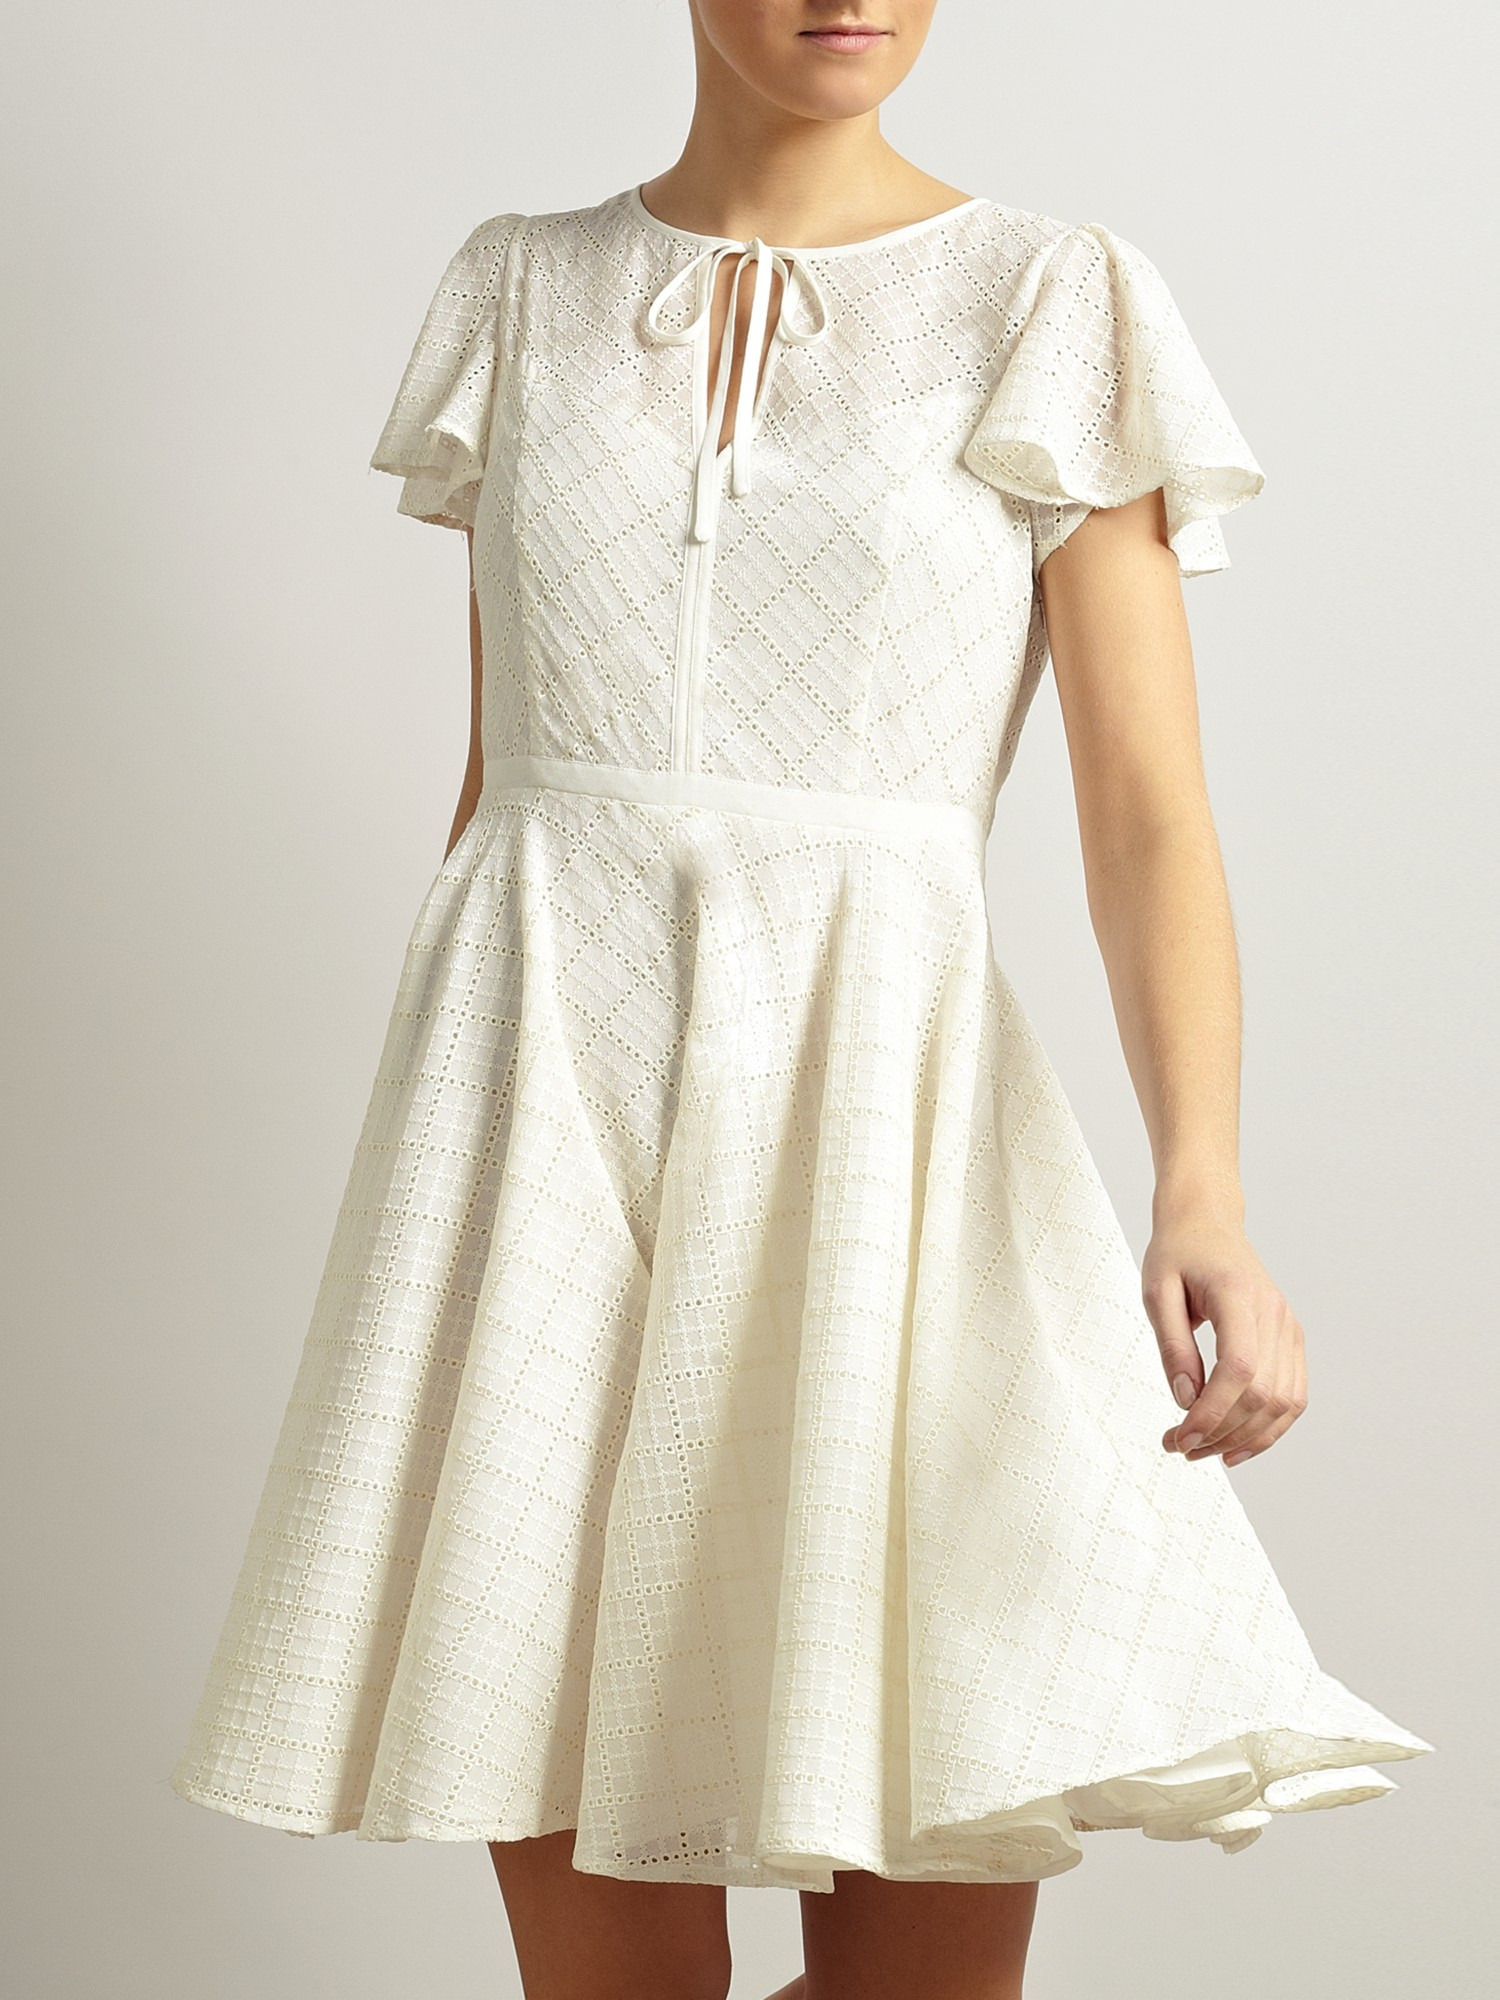 55f61affa9b80 Somerset by Alice Temperley Broderie Dress in Natural - Lyst